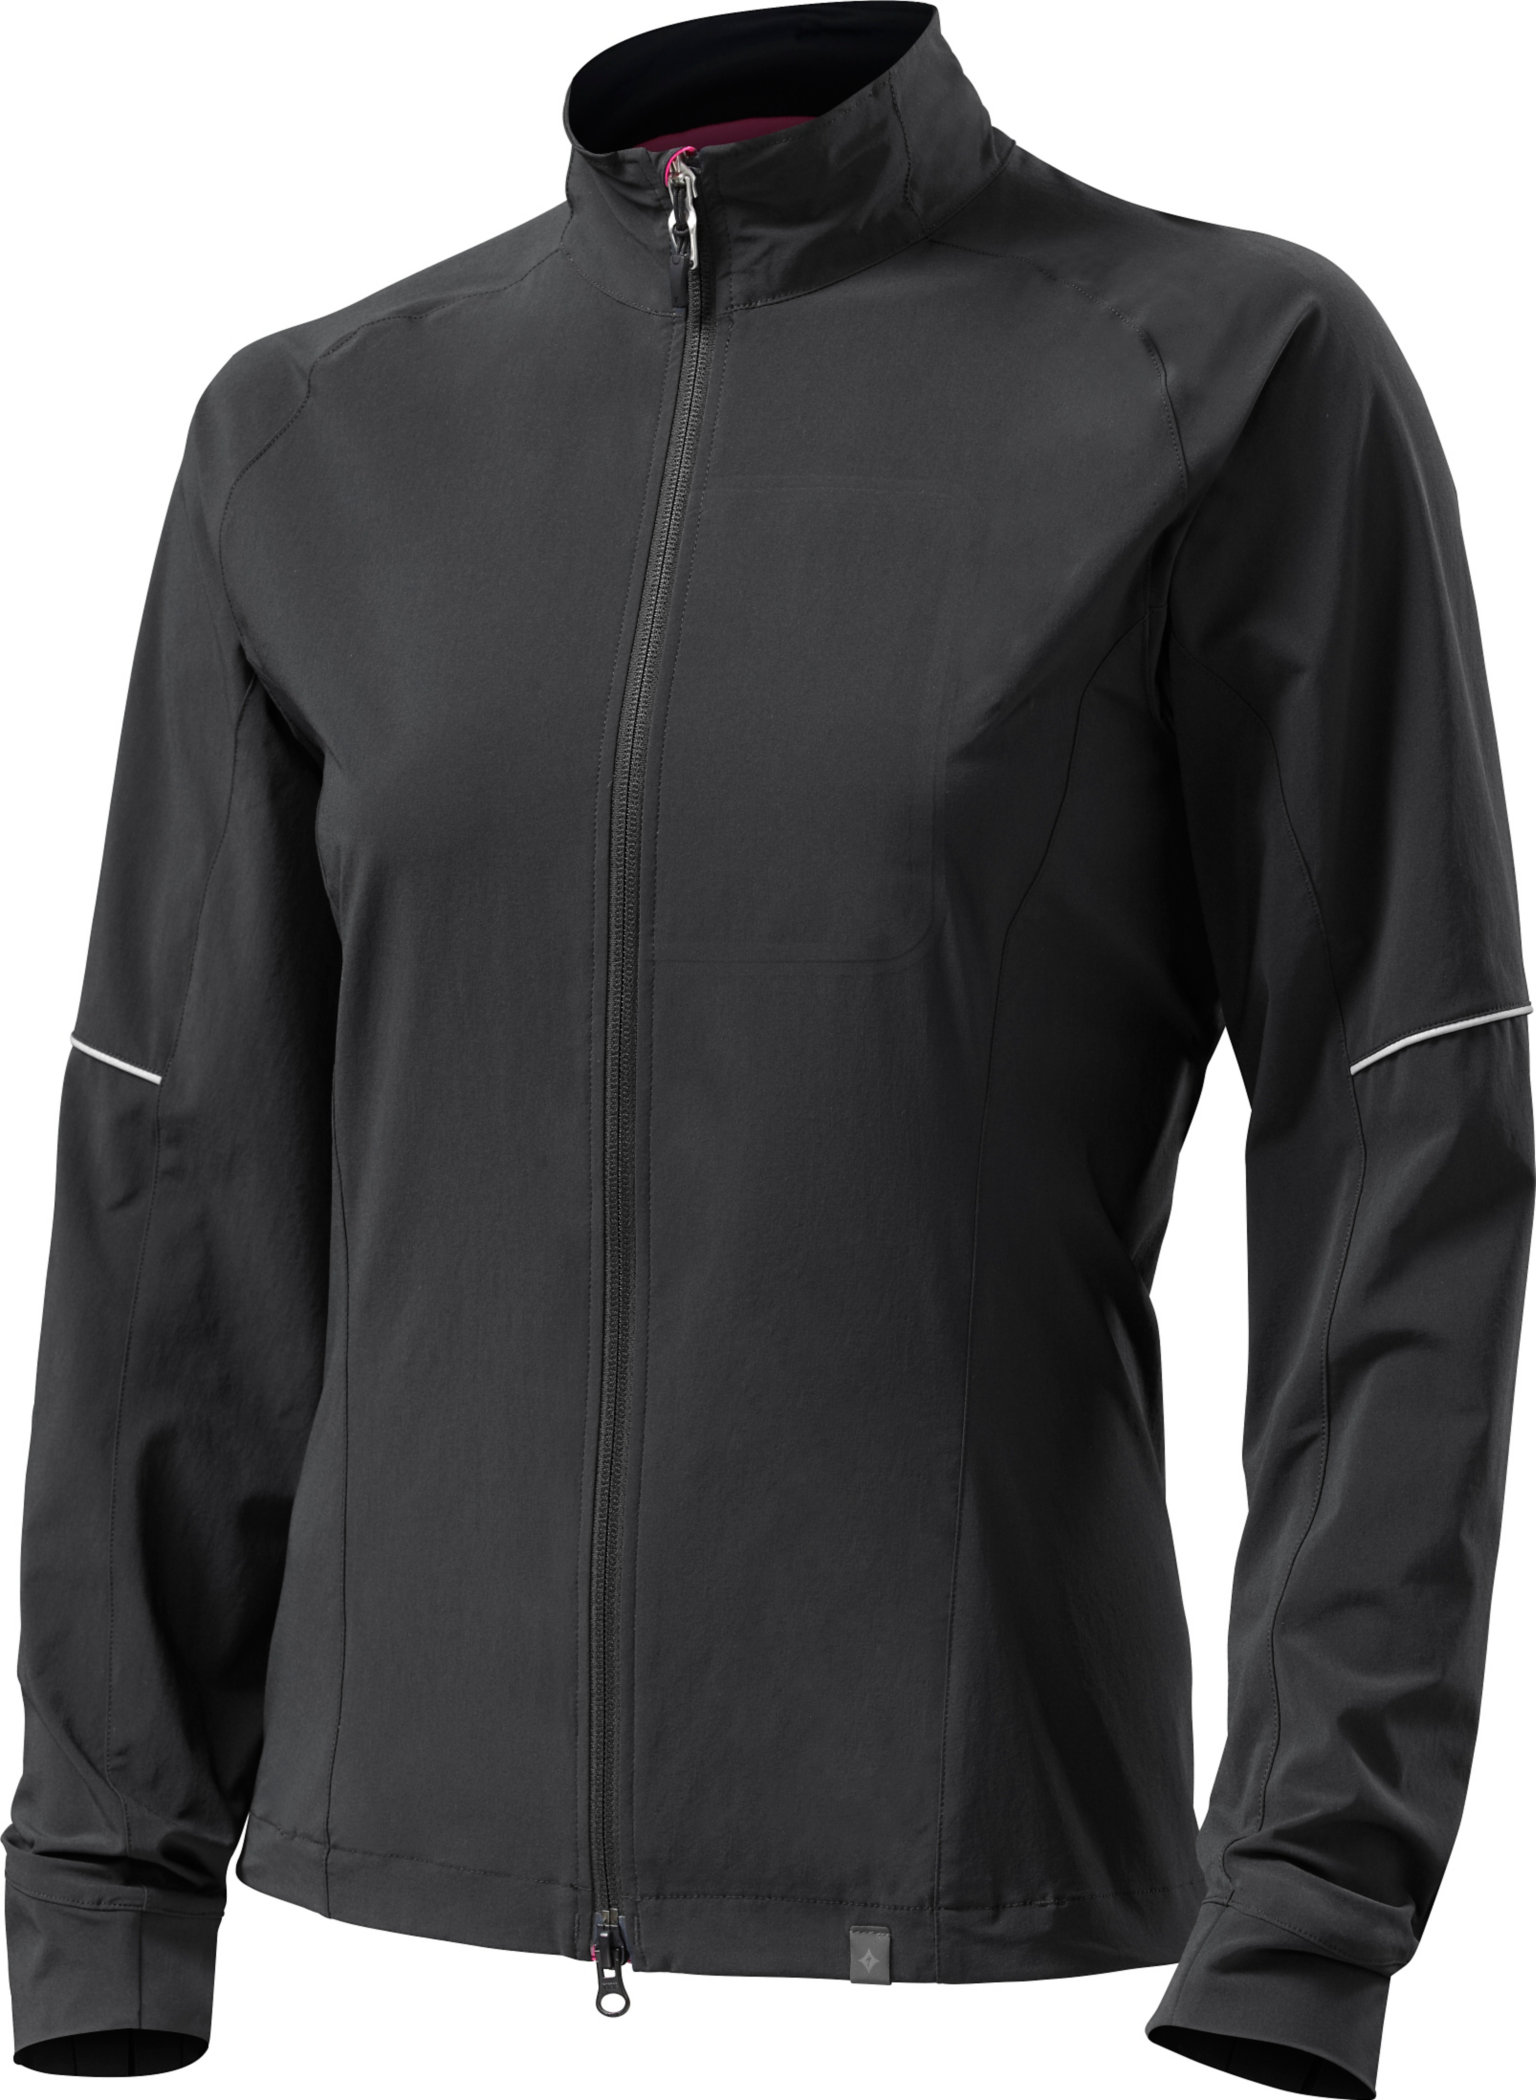 SPECIALIZED DEFLECT JACKET WMN BLK M - Alpha Bikes